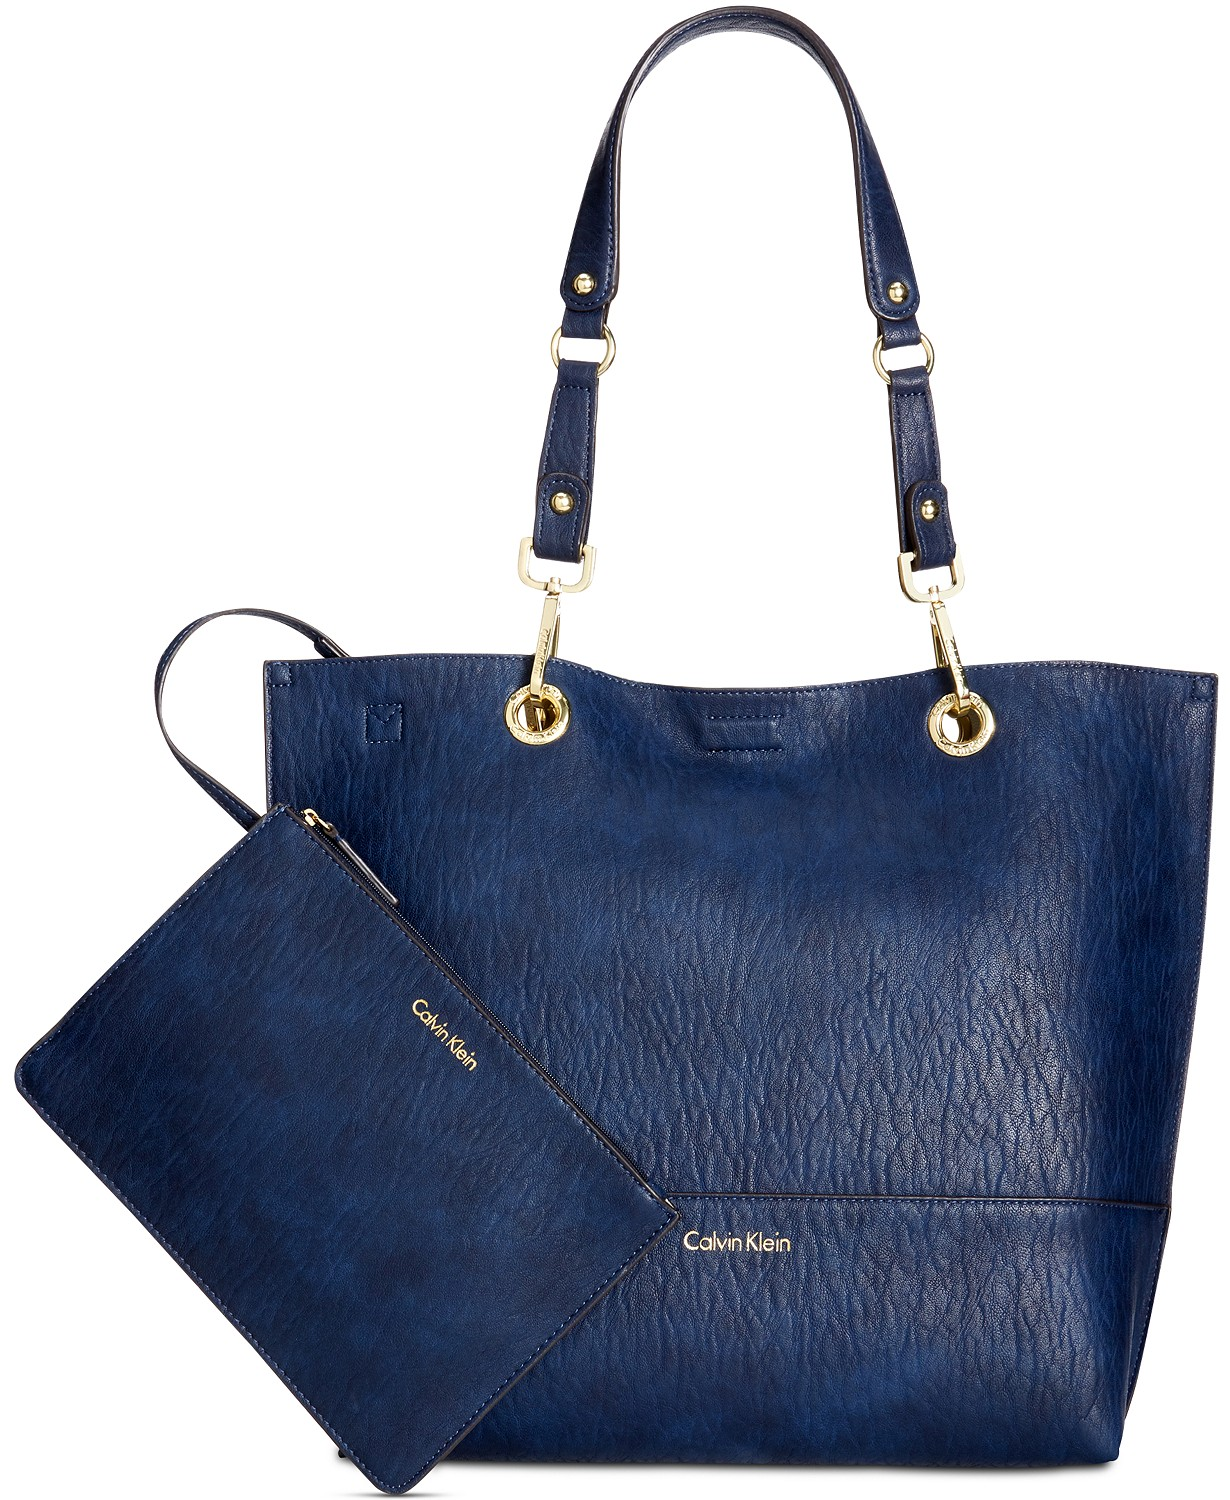 Sonoma Reversible Tote Calvin Klein - Ever have those days where you can't make up your mind on which bag you want to use? Of course you do, we all go through it. Whatever mood you are in, grab a reversible tote from Calvin Klein, they are at Macy's for only $148.